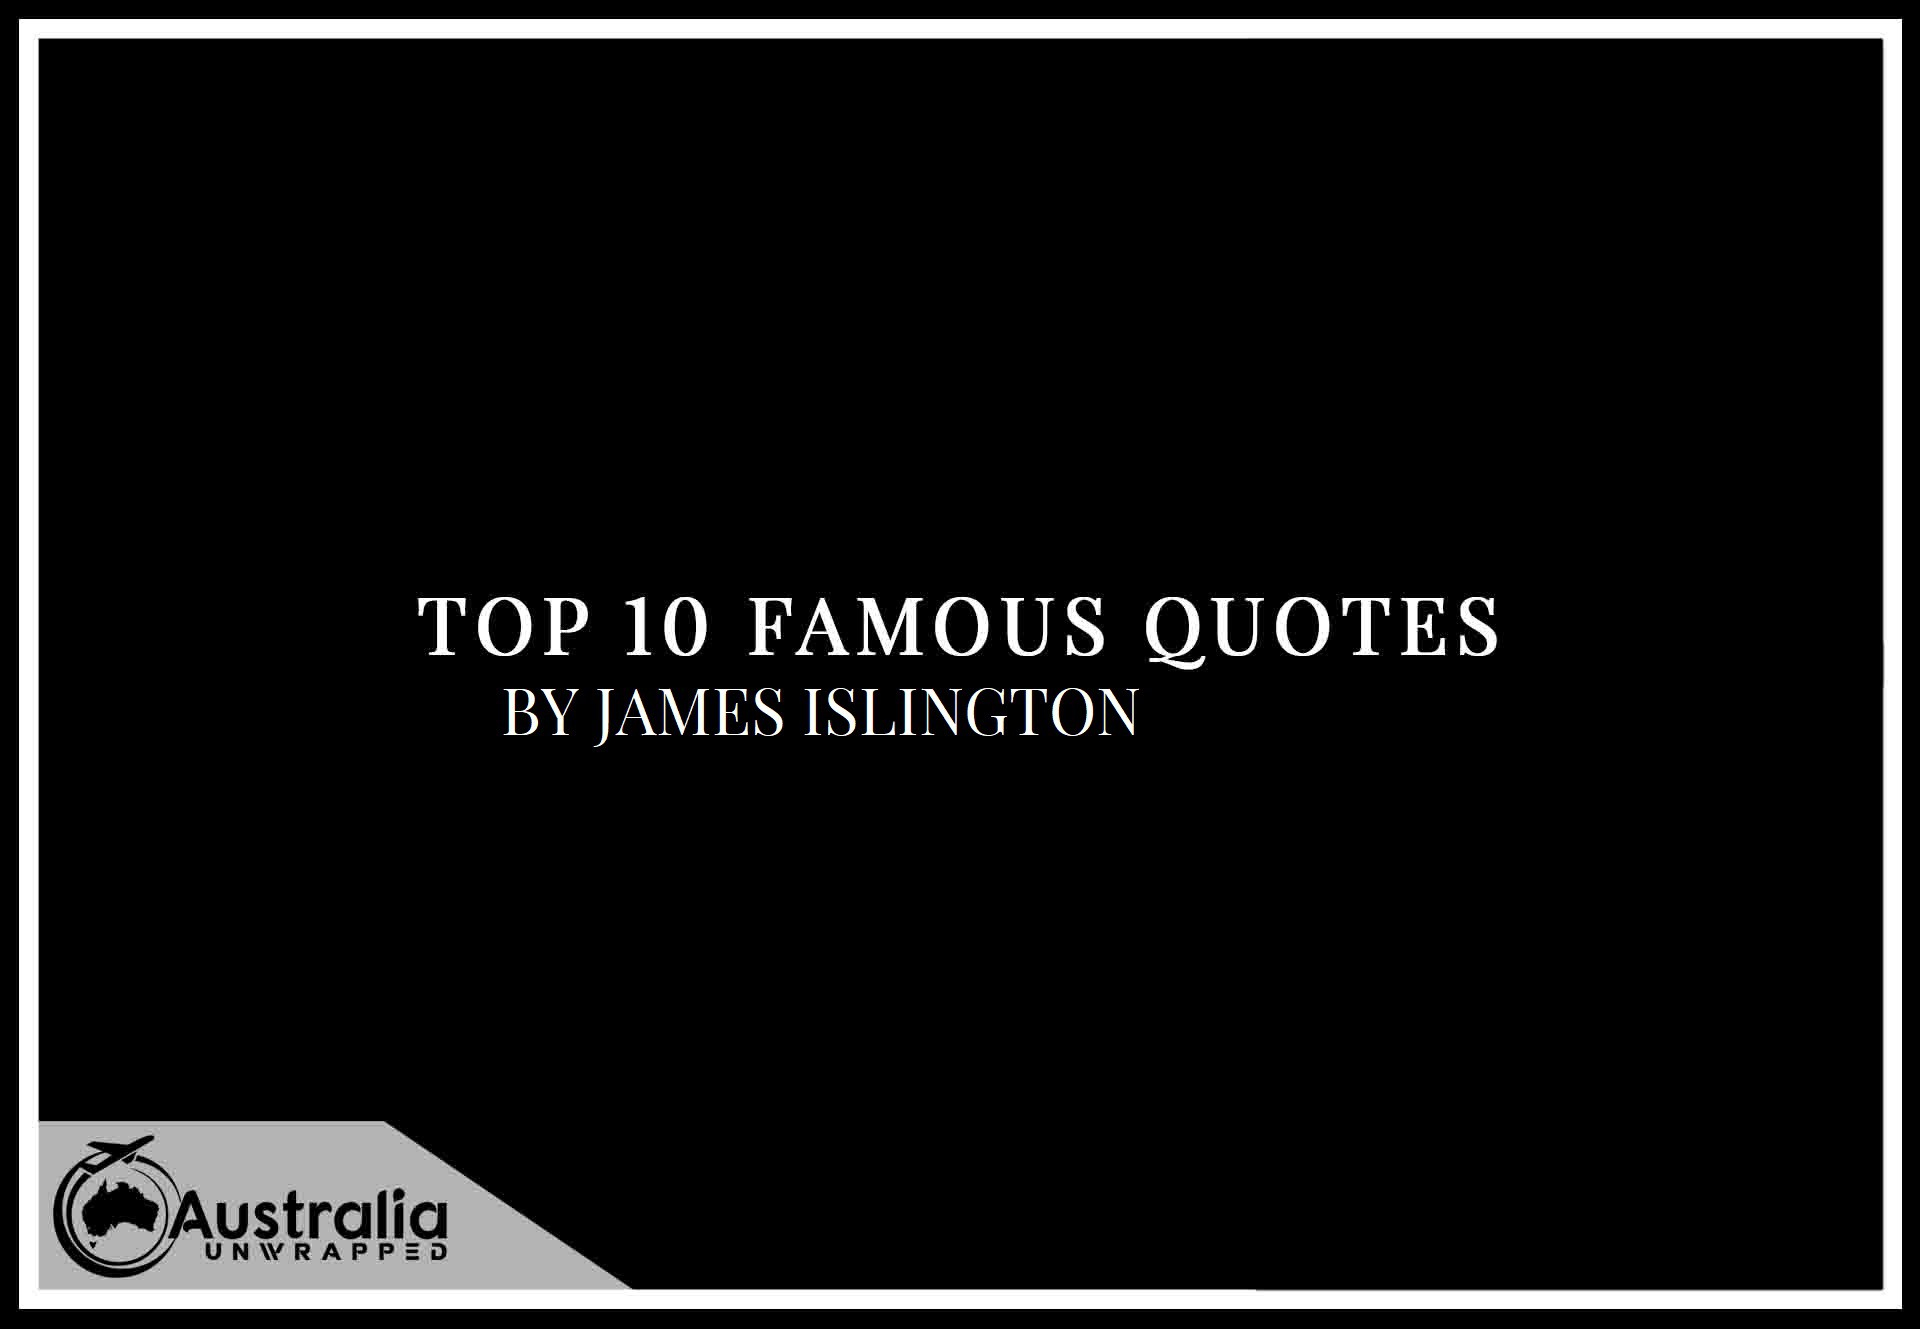 Top 10 Famous Quotes by Author James Islington